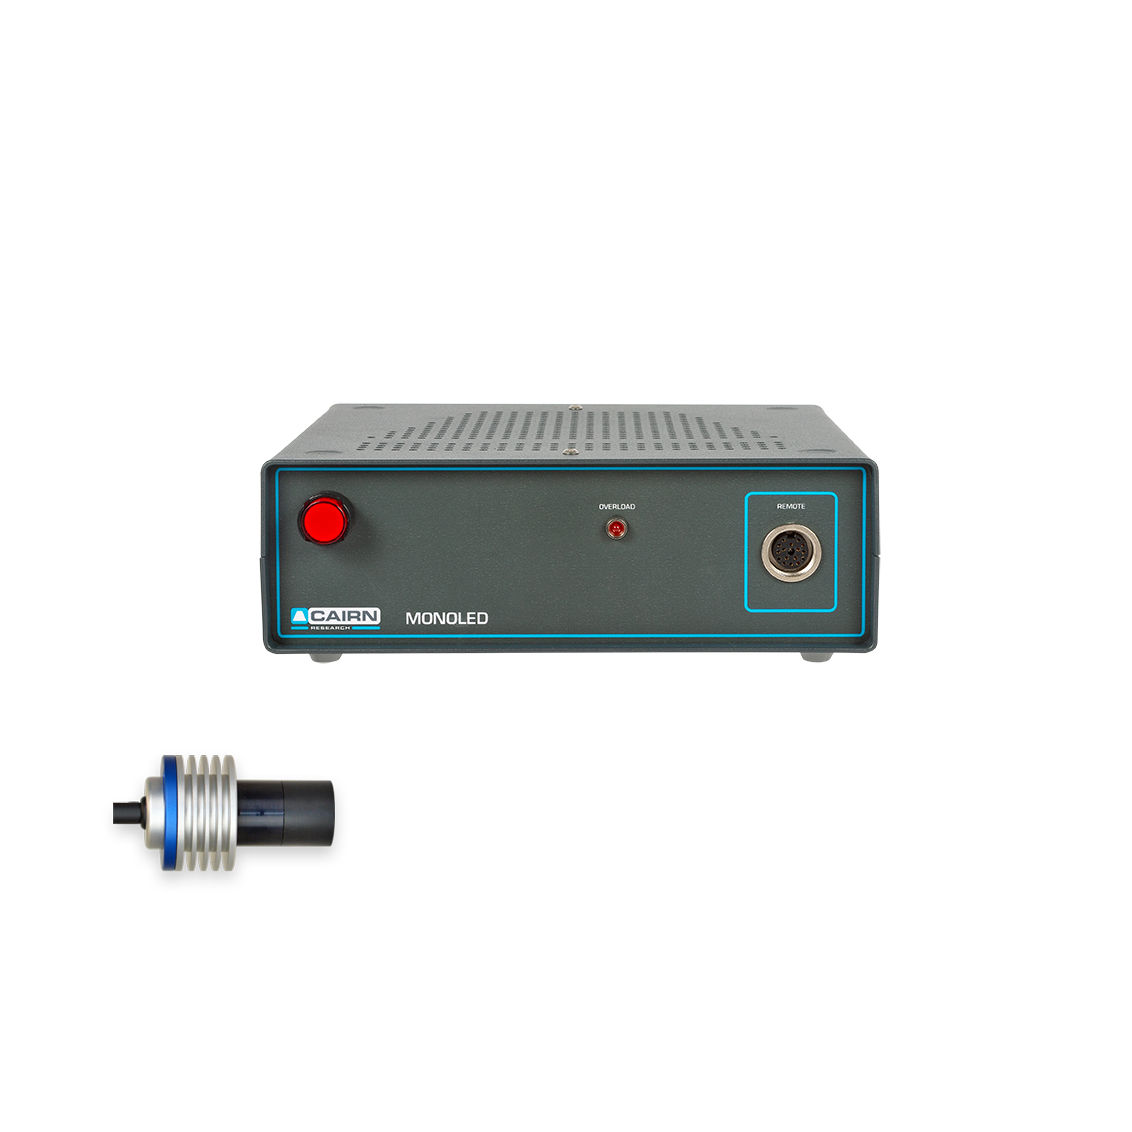 cairn-power-supply-5